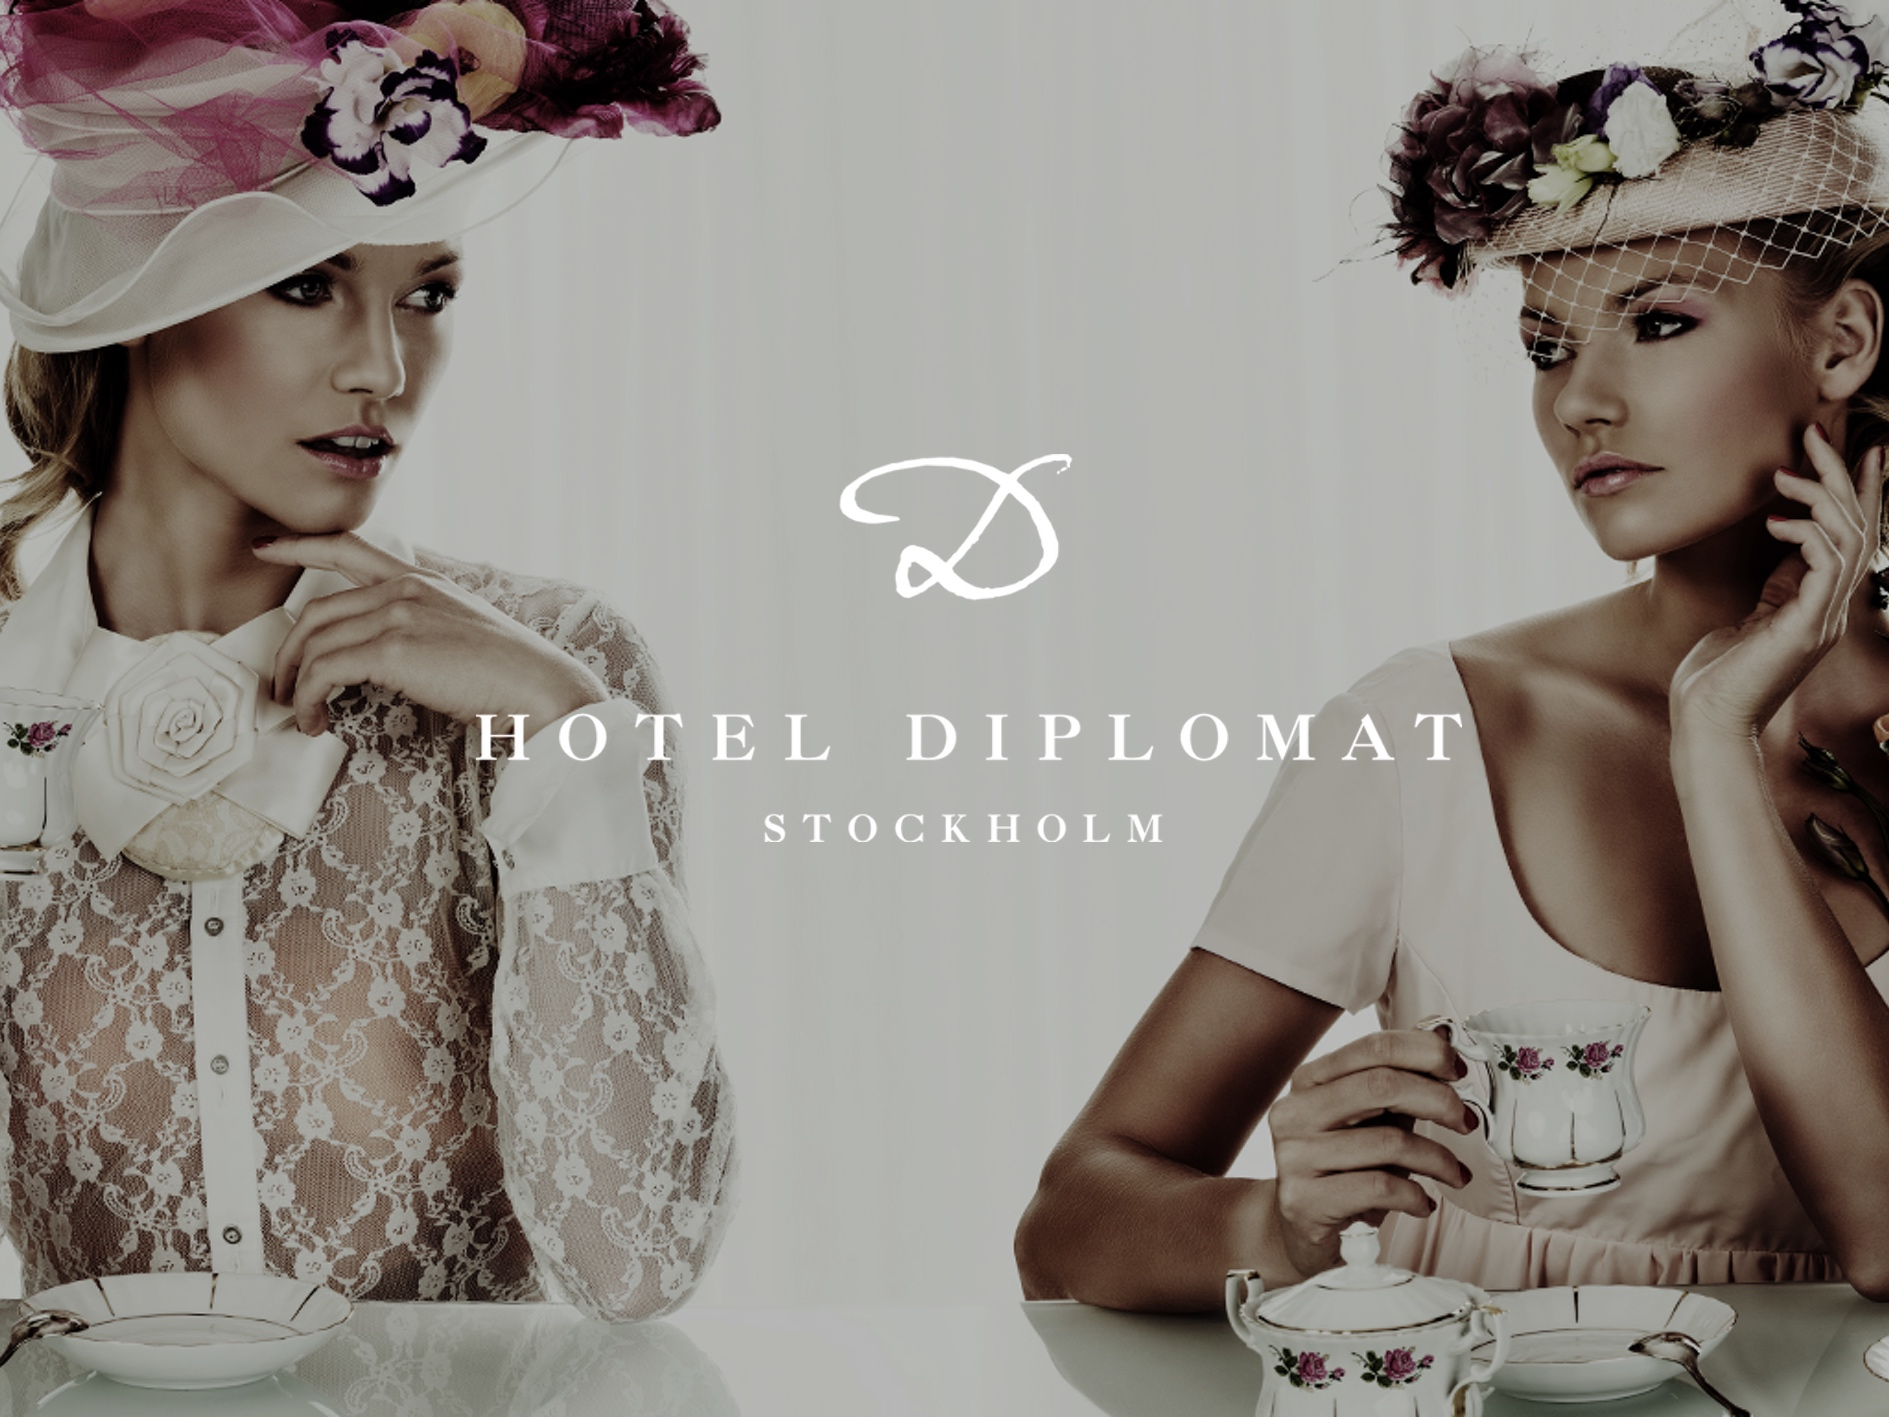 Hotel Diplomat for HotelEtail site 3.jpg